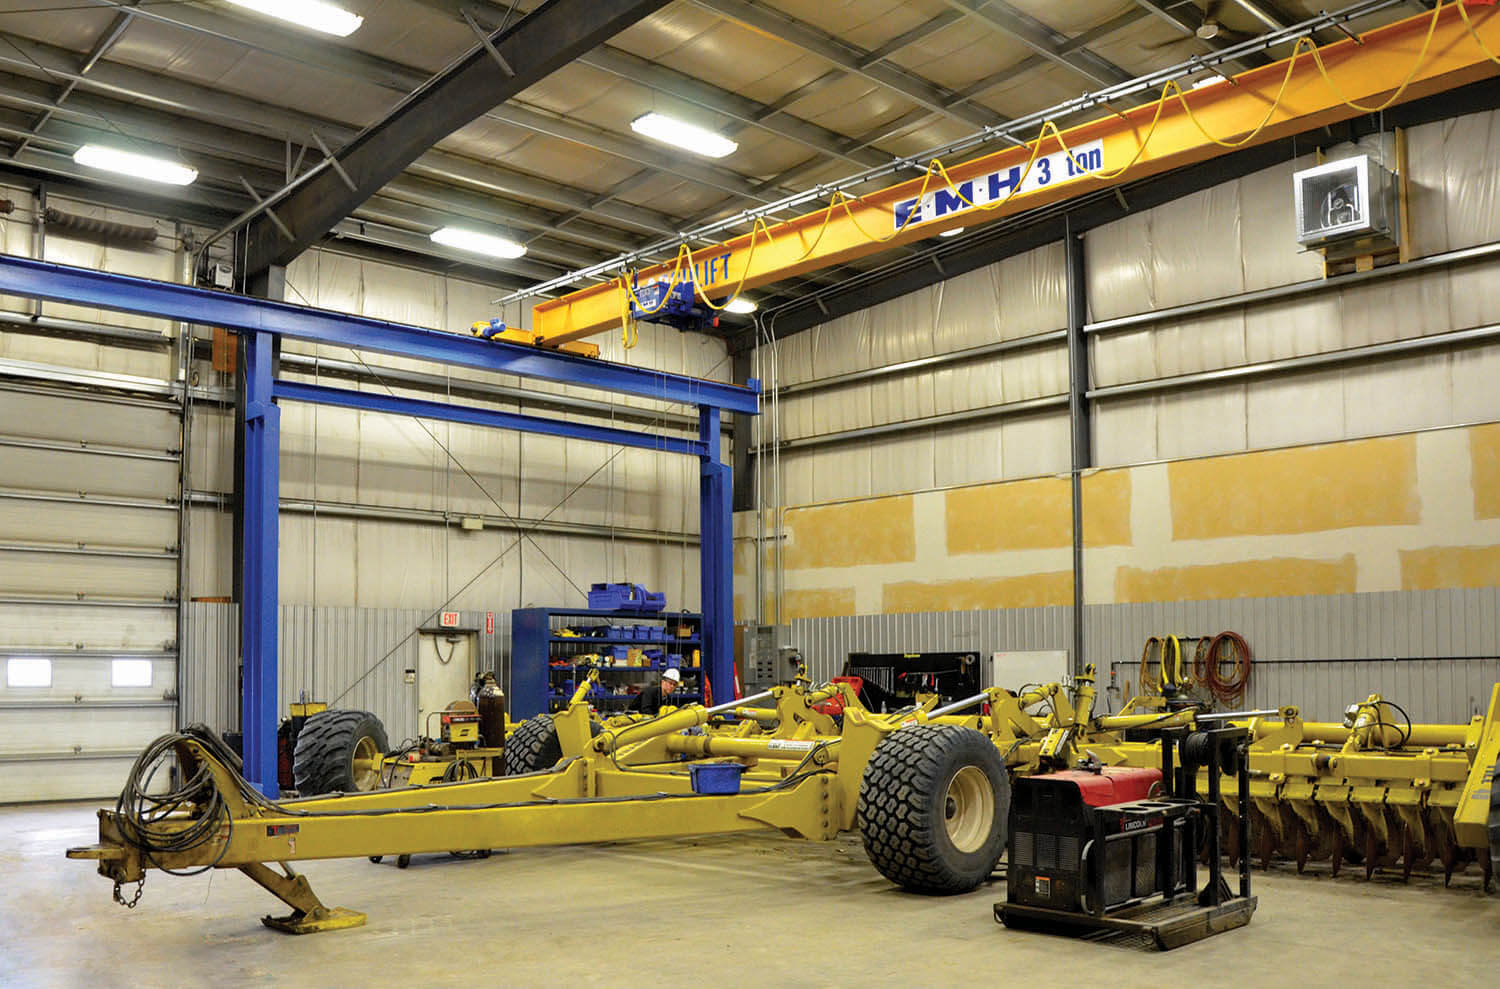 EMH 3 ton overhead bridge crane farm implements saskatchewan installl crane dealer lift crnae